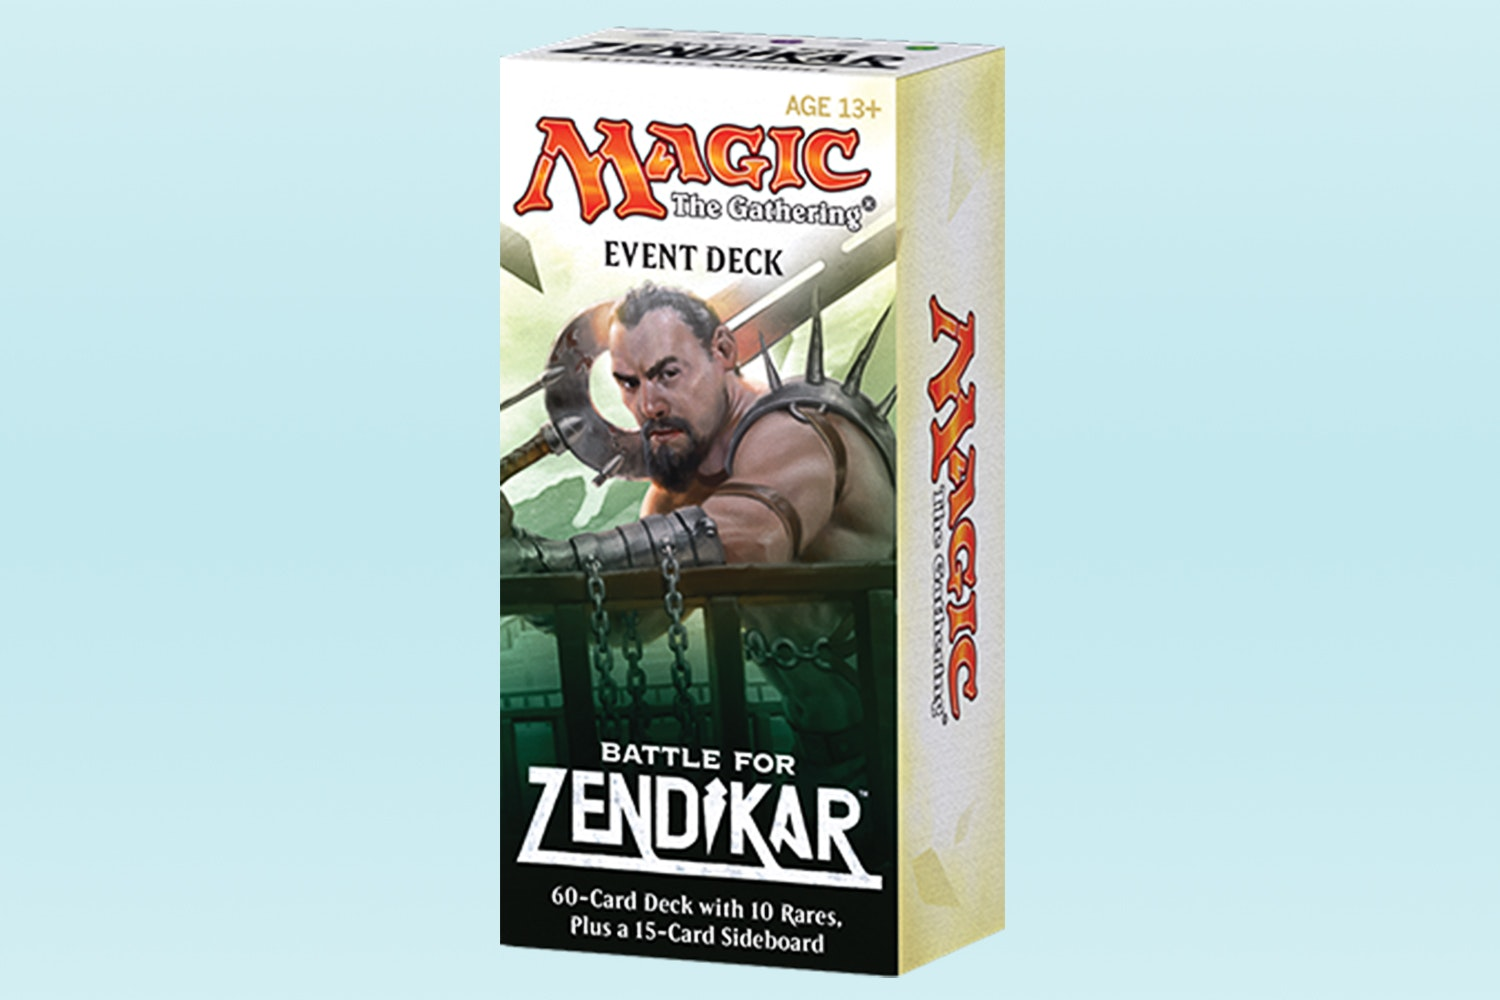 Battle for Zendikar Event Deck